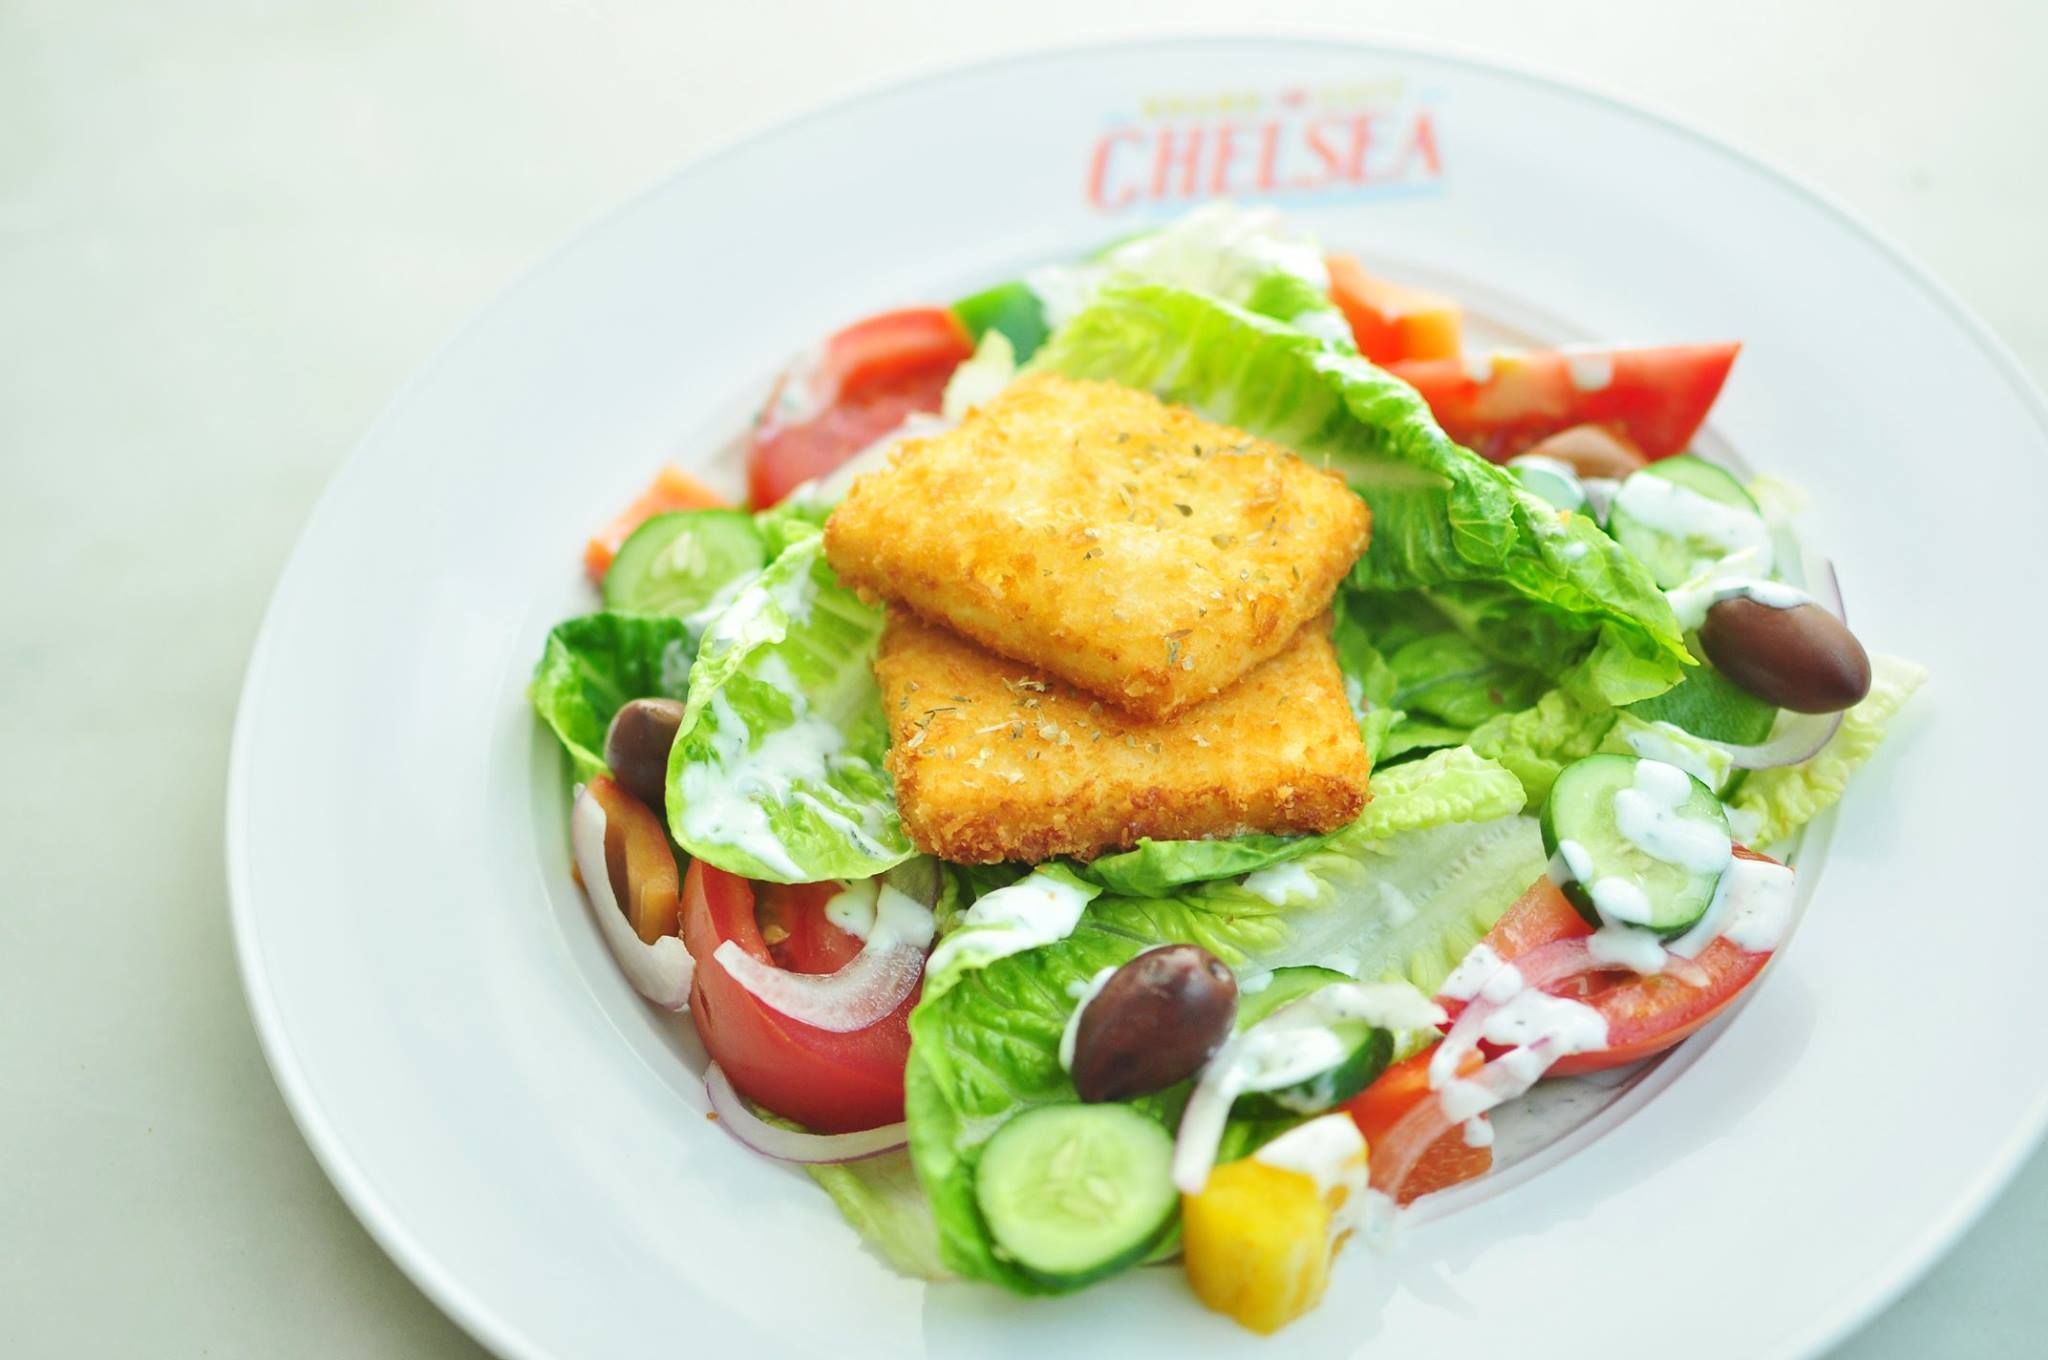 Chelsea Greek Salad with tomatoes, bell peppers, baby romaine, drizzled with lemon vinaigrette, dill yogurt and topped with panko crusted feta cheese. Buy Chelsea Grand Cafe Gift Certificates and Gift Cards at Gifted.PH online for anyone in Manila Philippines